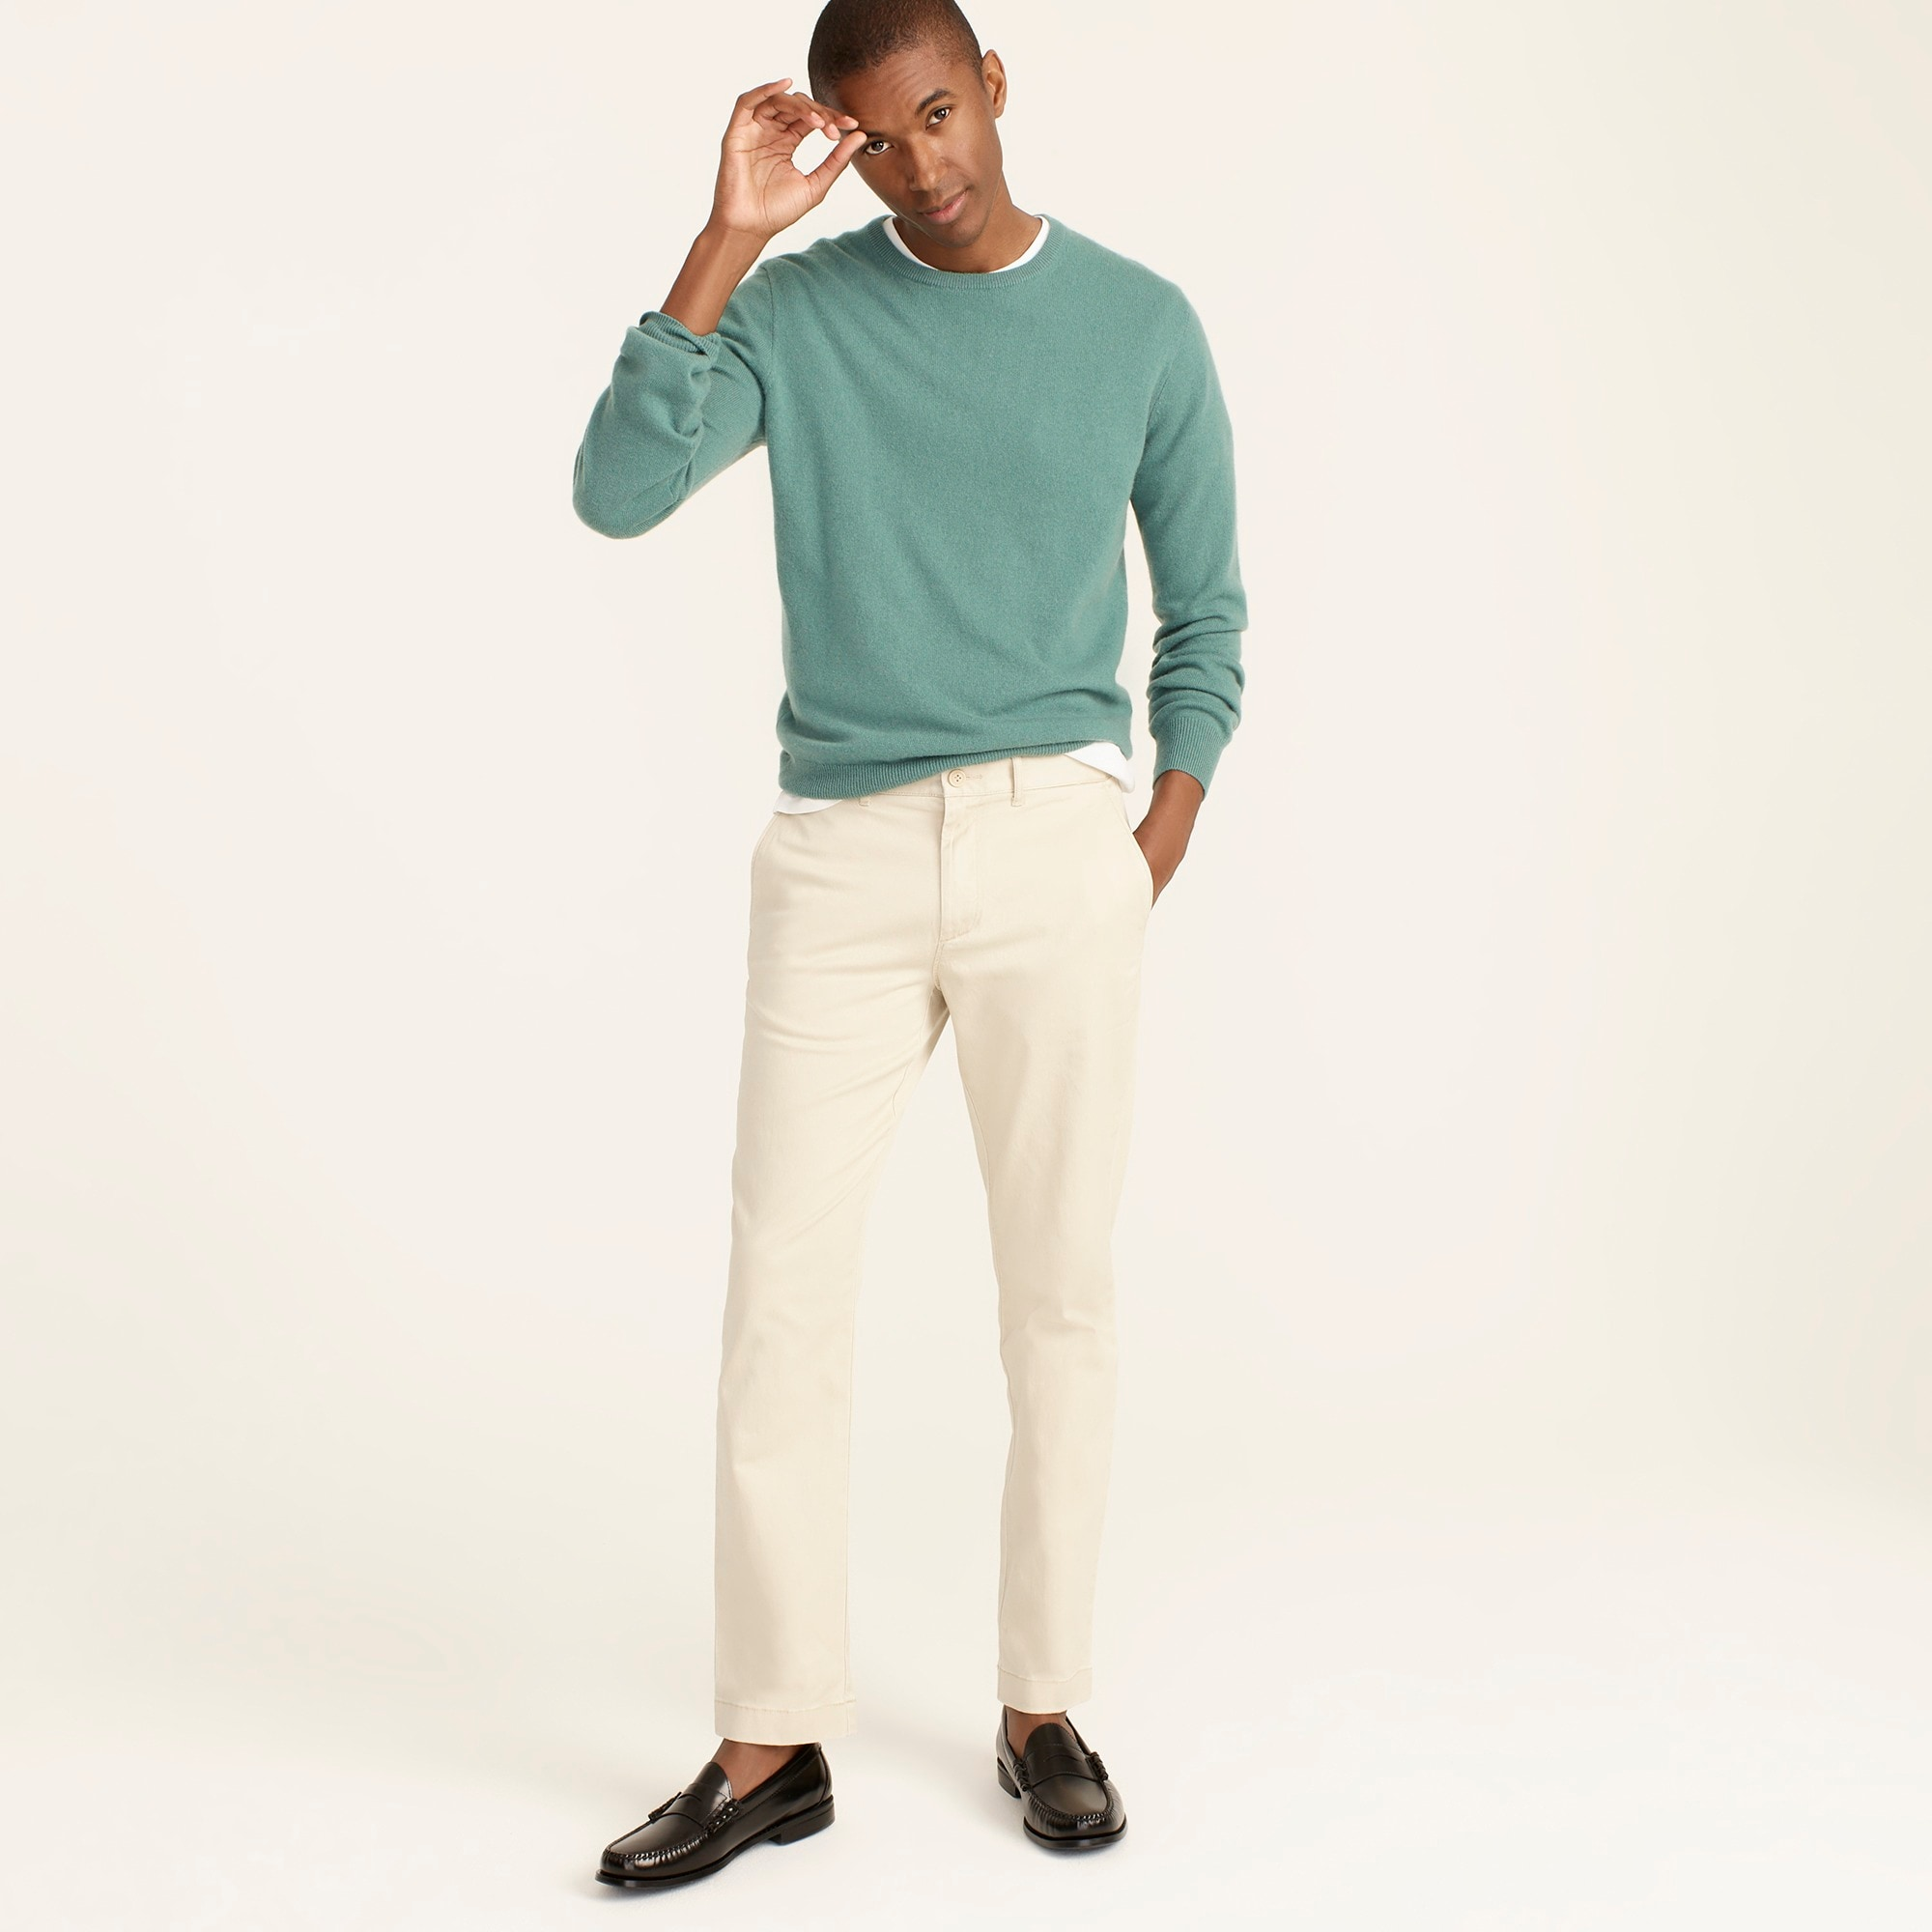 stretch chino in 770 fit : men's chinos